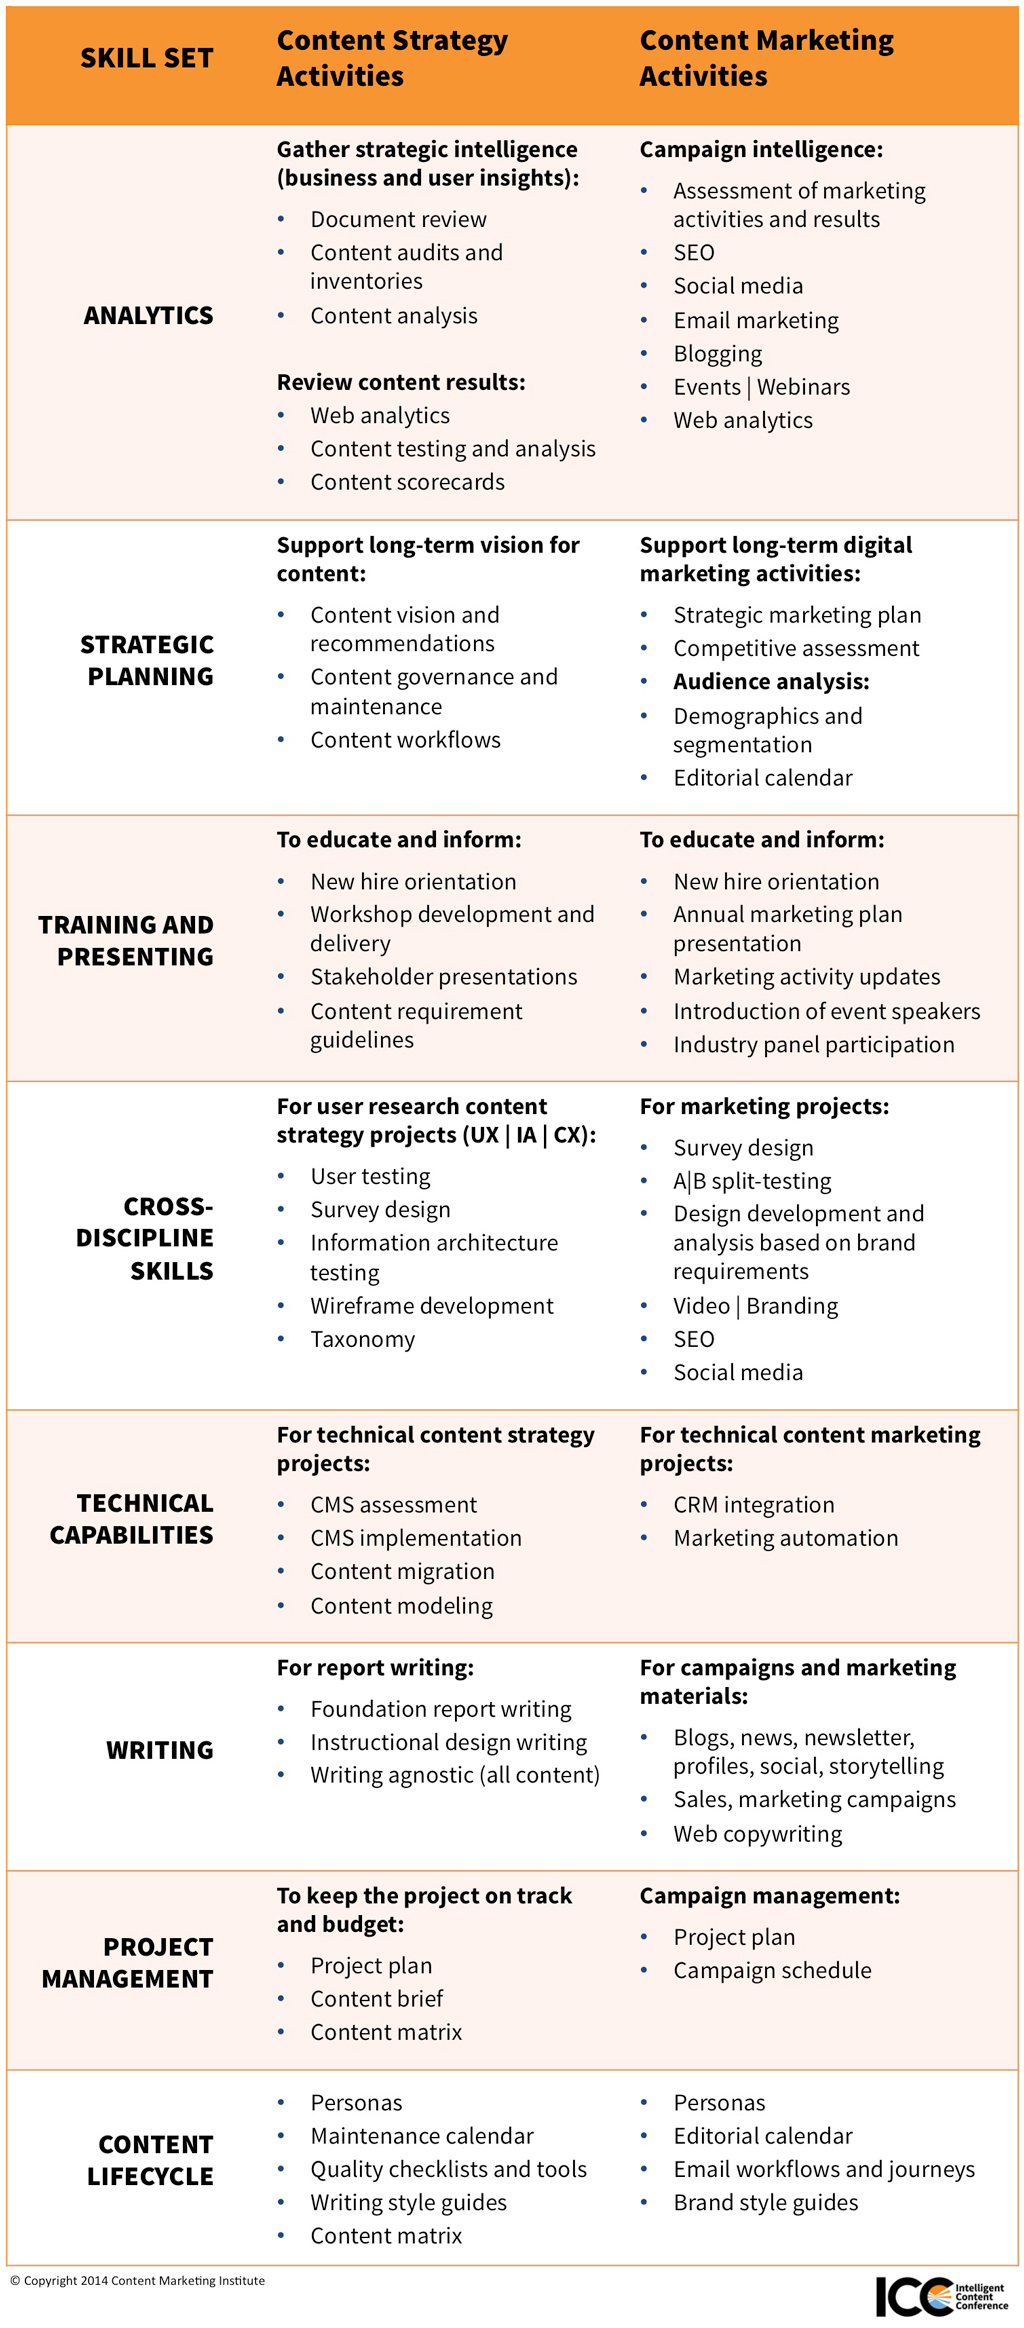 content marketing vs content strategy how do their skill sets content strategy vs content marketing skills comparison table